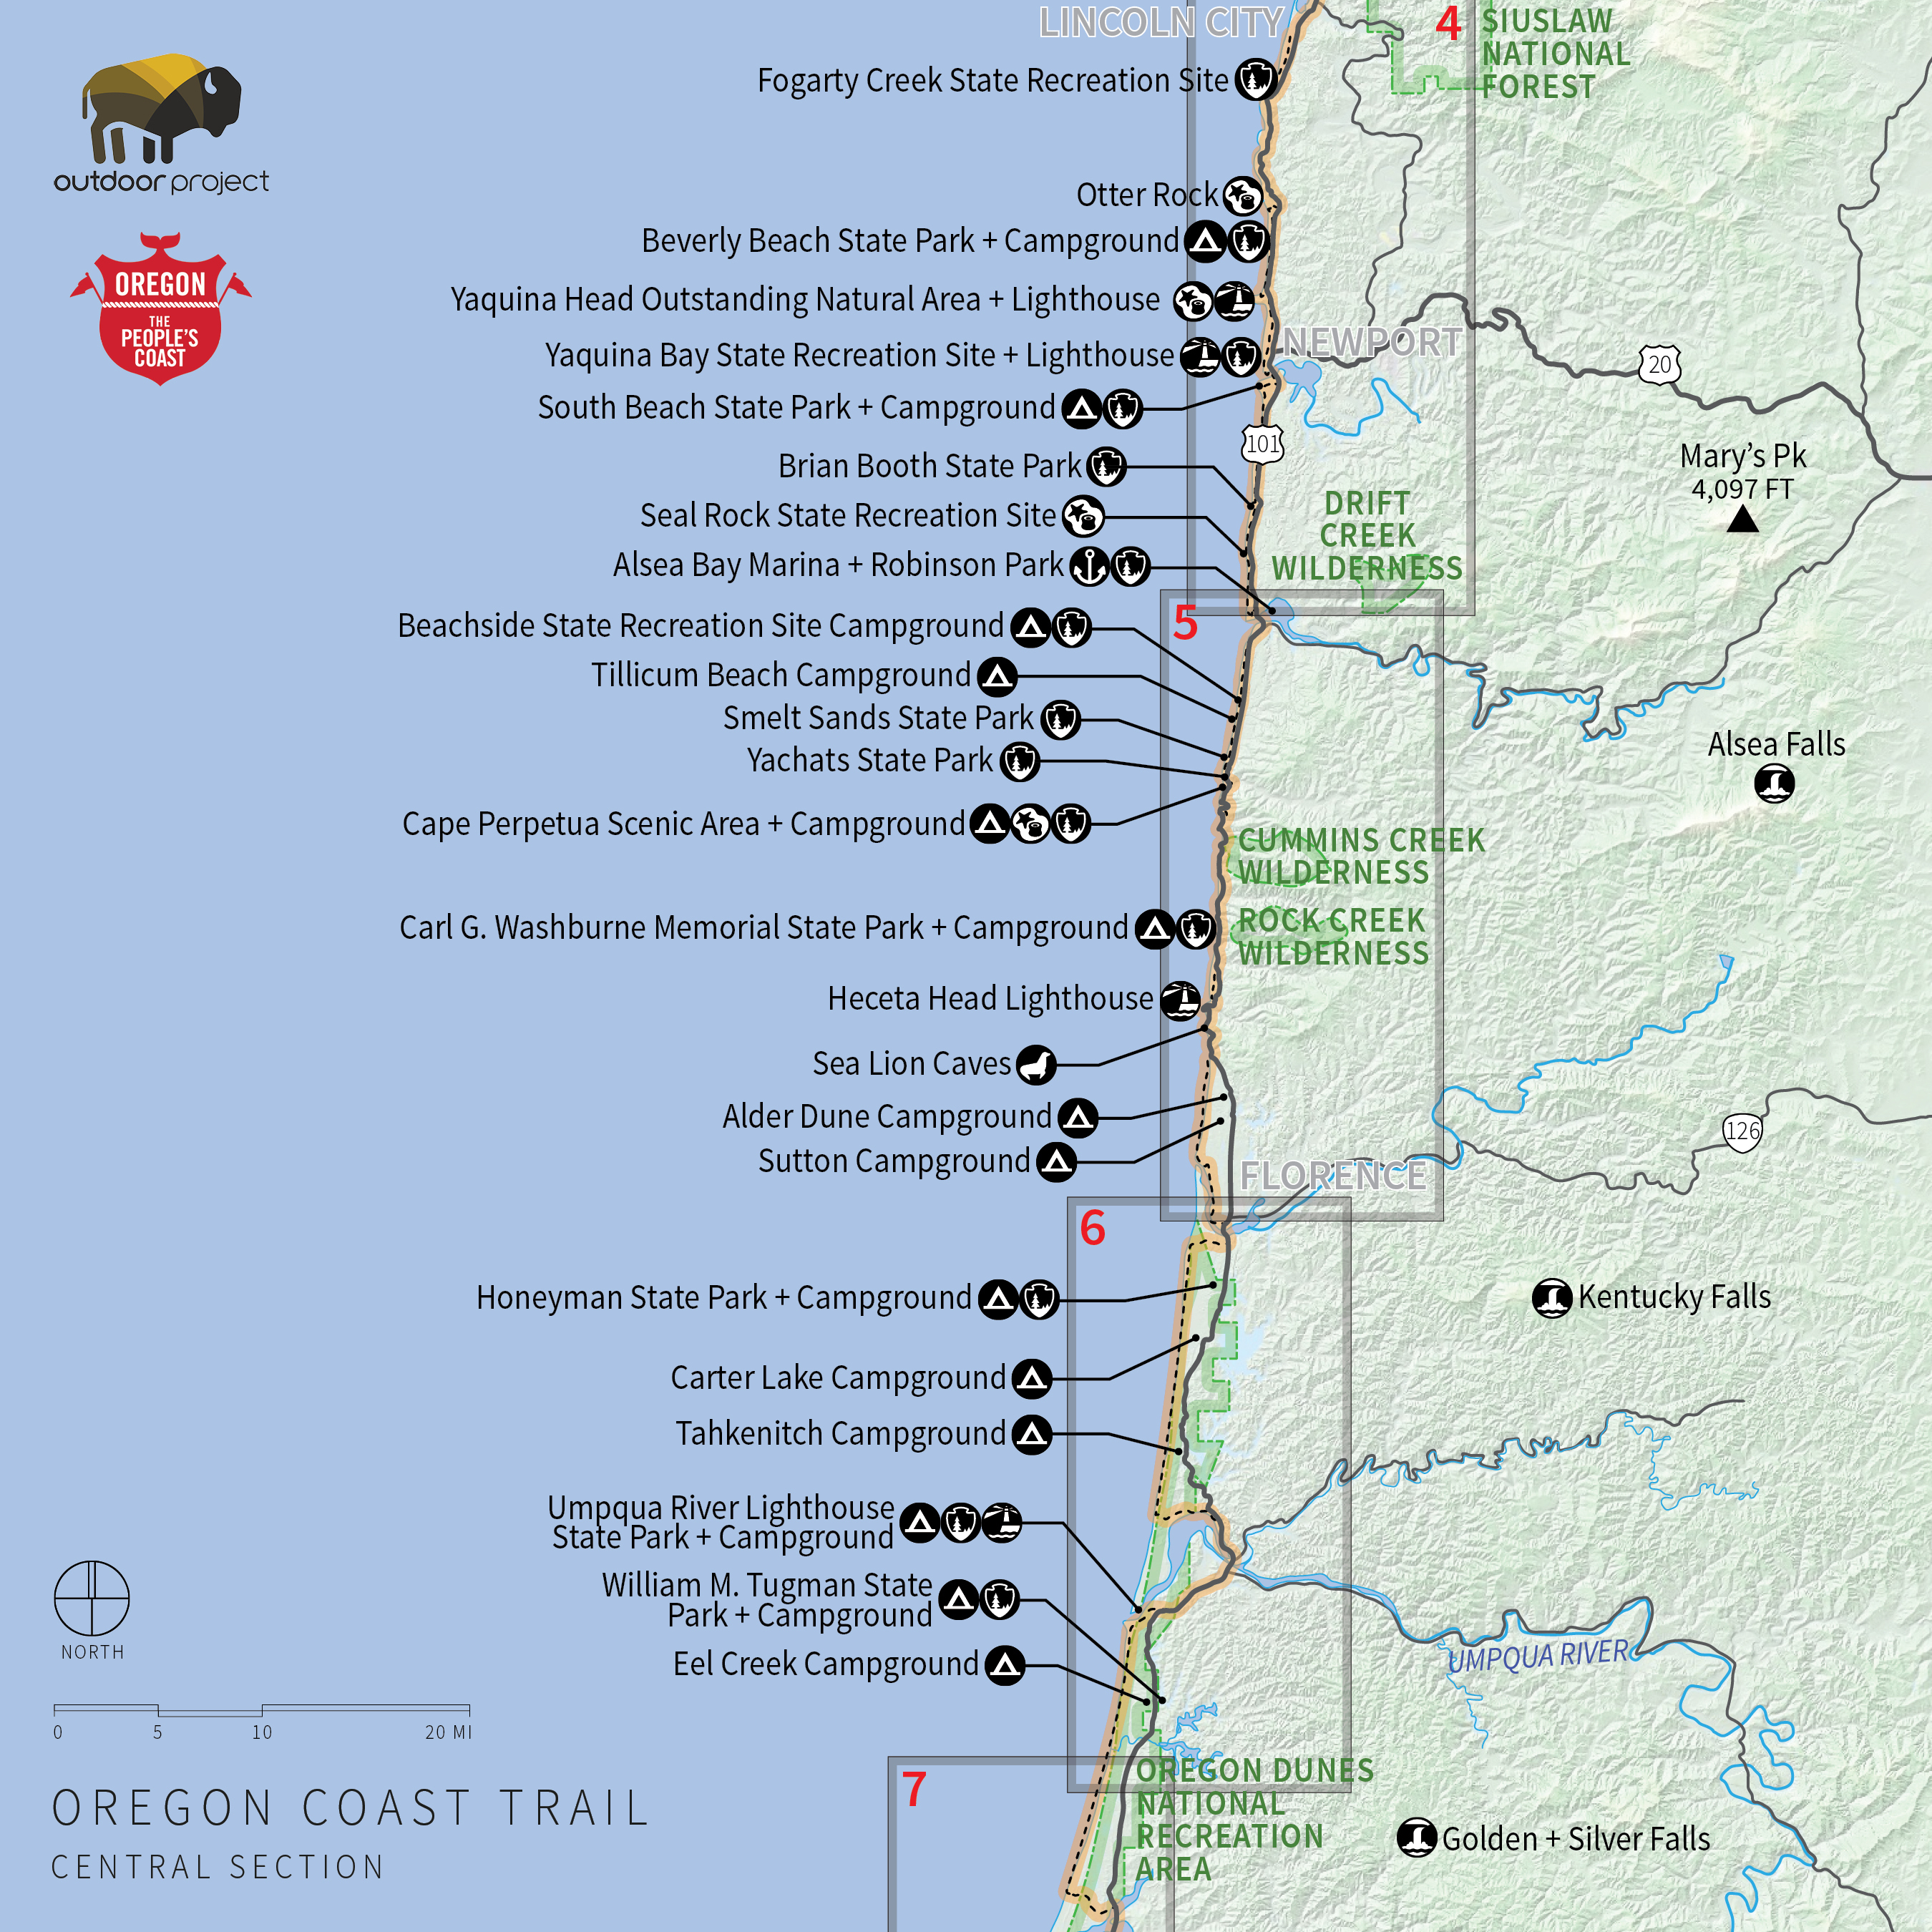 Oregon Coast Trail Central Hd Map Of California Coastal Trail Map - California Coastal Trail Map